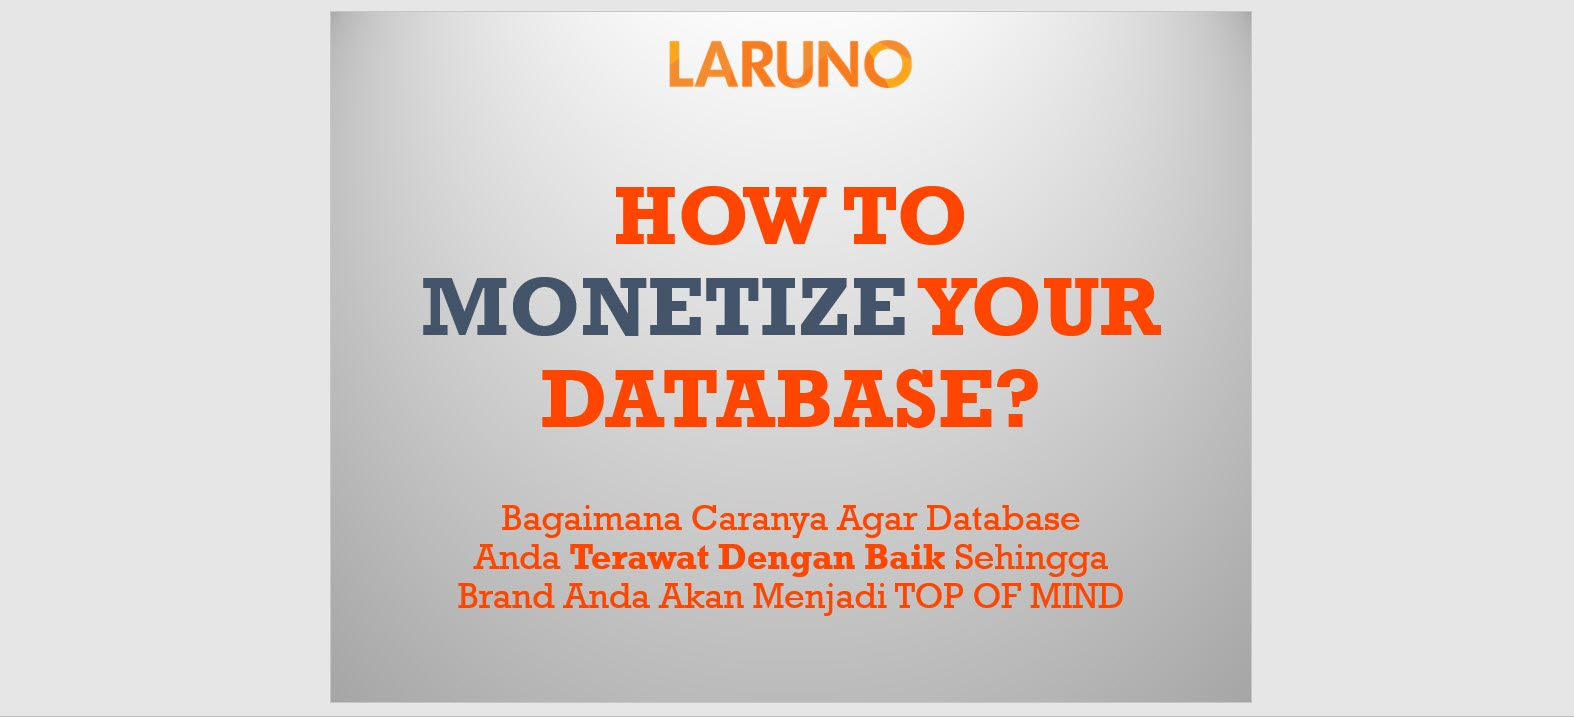 Manage Your Database [Video]